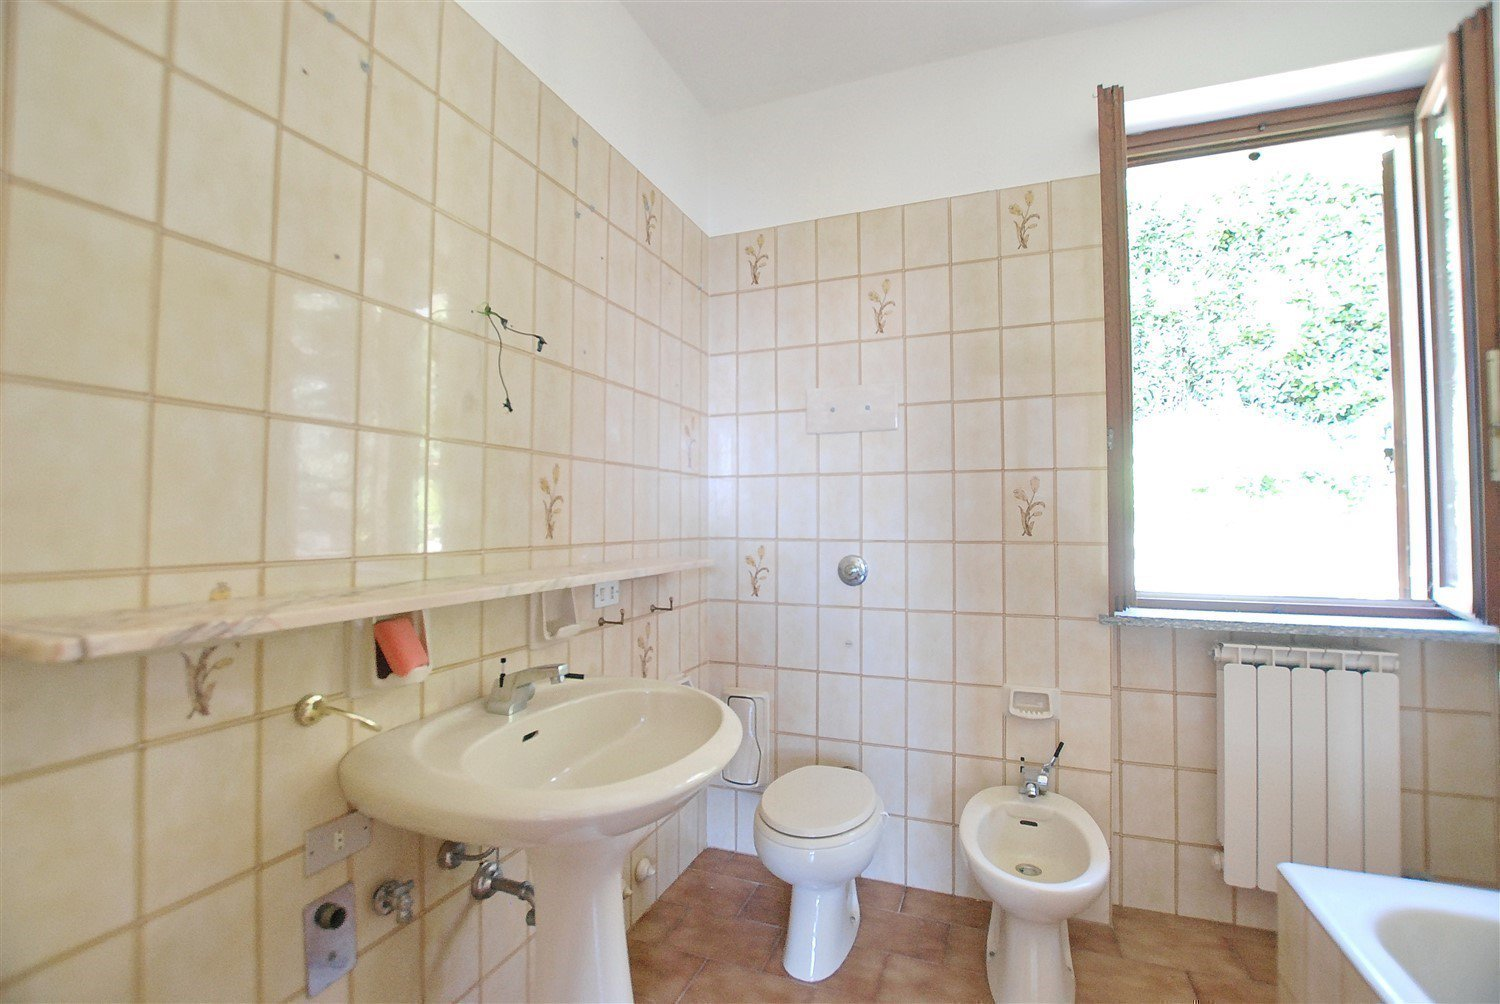 Apartment for sale in Belgirate - bathroom